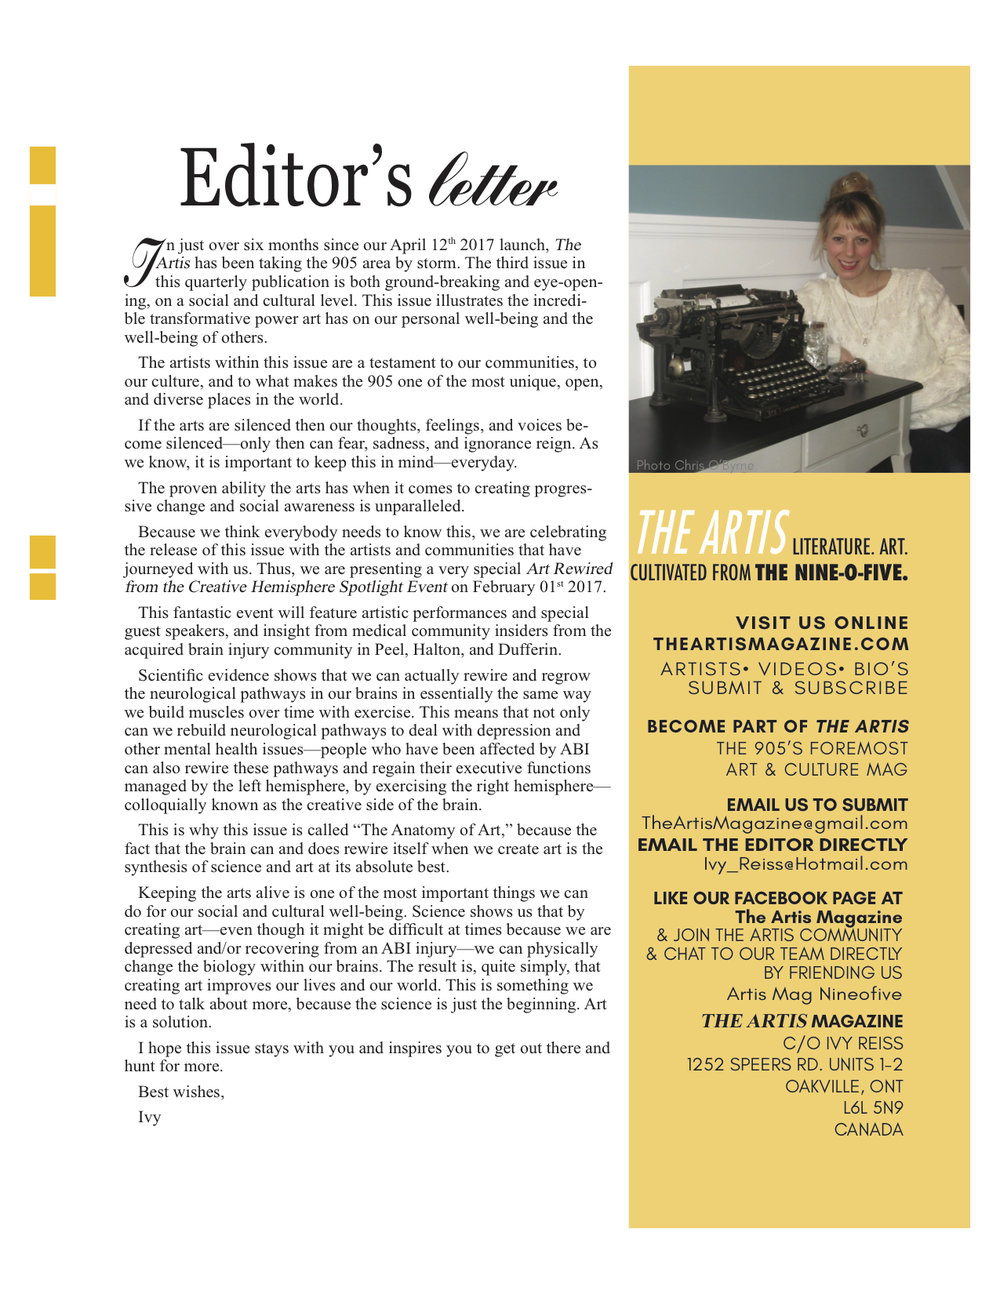 Read  The Artis 3  Editor's Letter to see the vision for this issue and event.